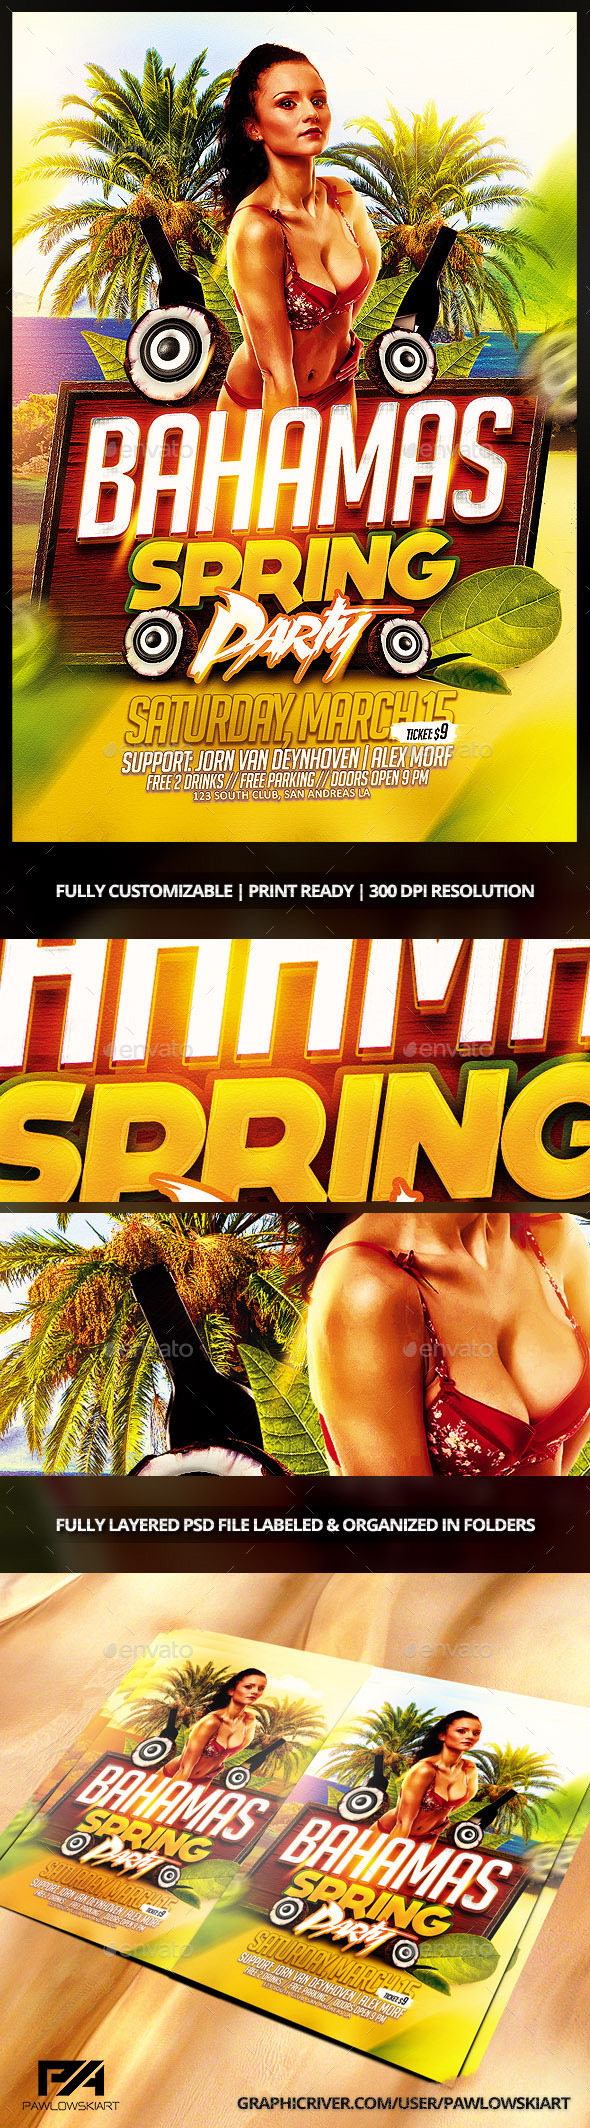 GraphicRiver Bahamas Spring Party Flyer Template 10351299